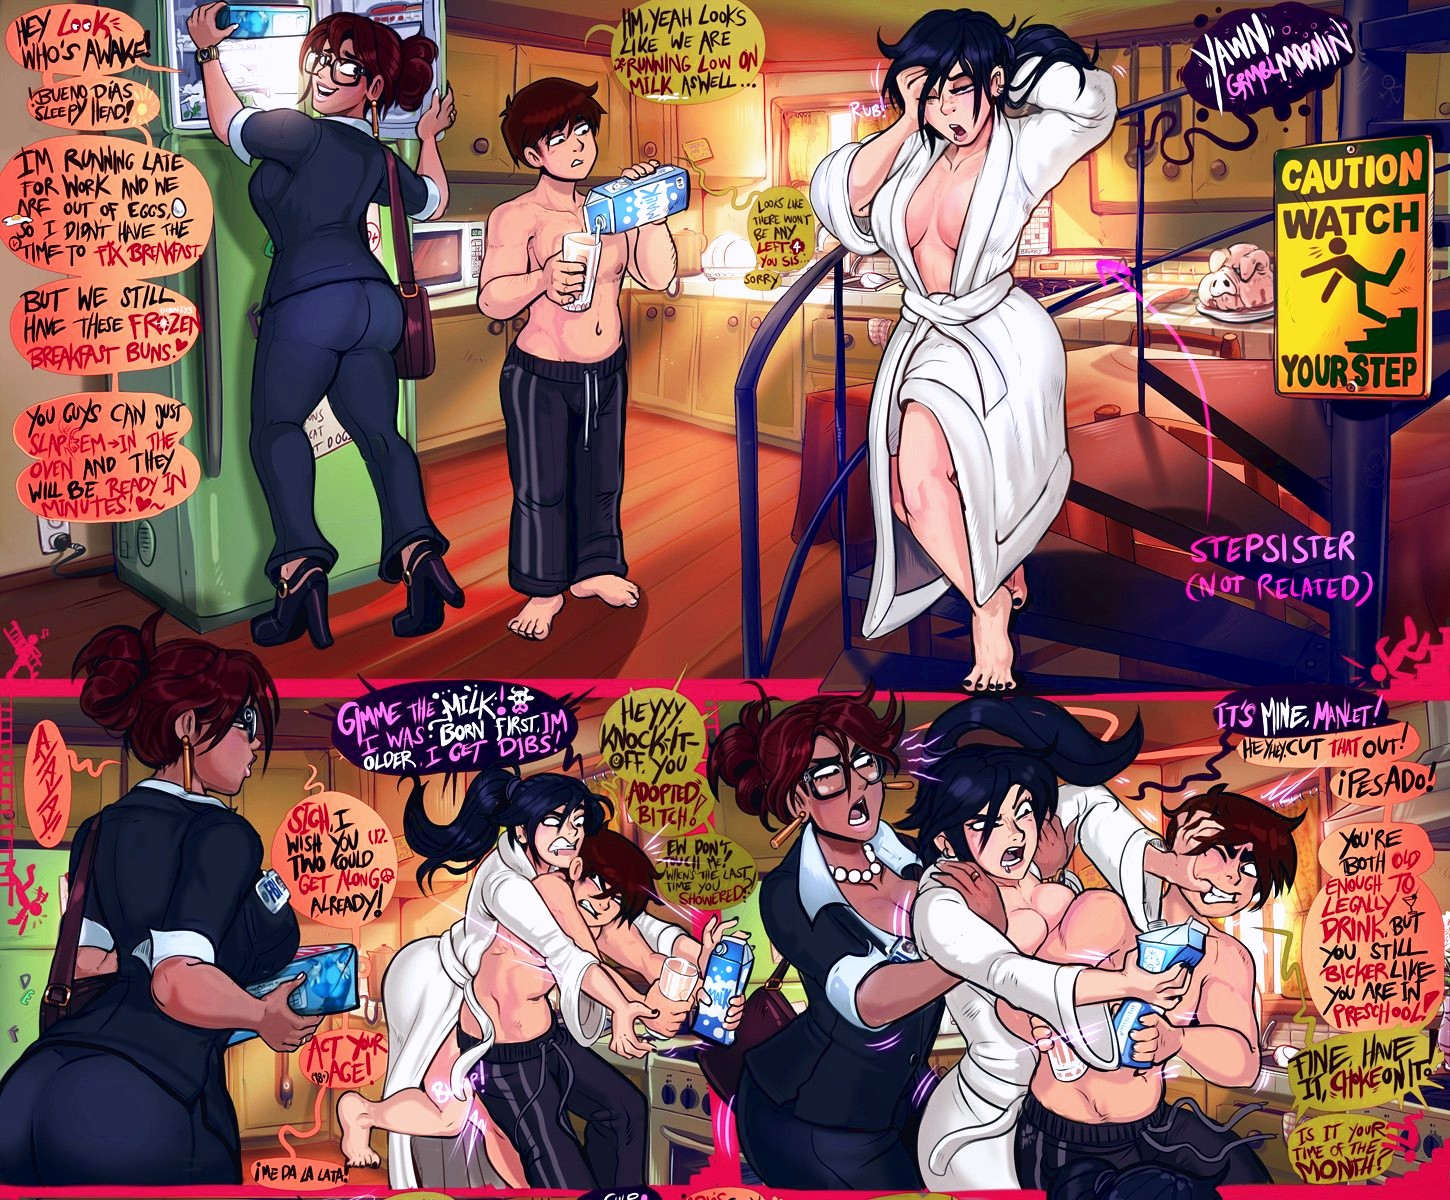 Watch Your Stepr porn comic page 1